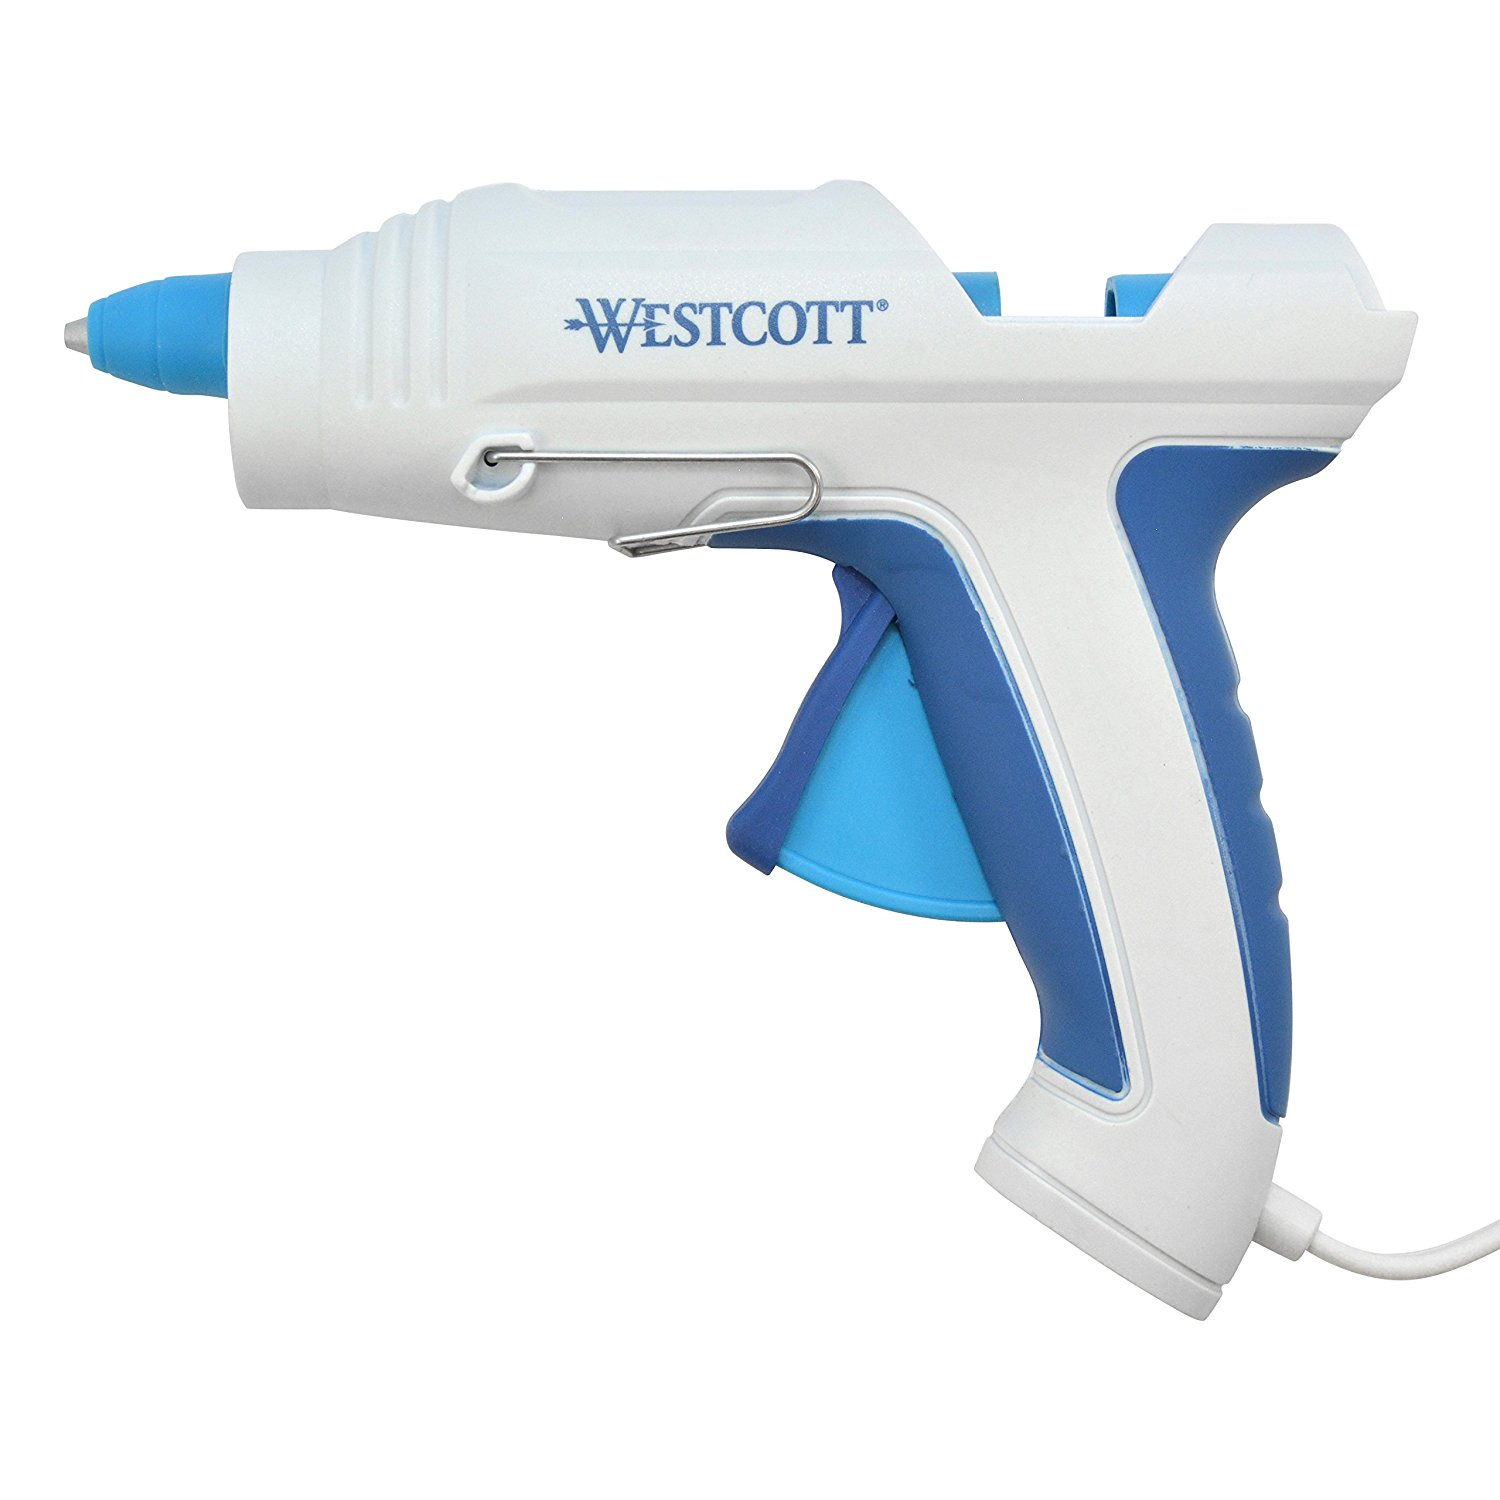 Westcott Hot Power Glue Gun